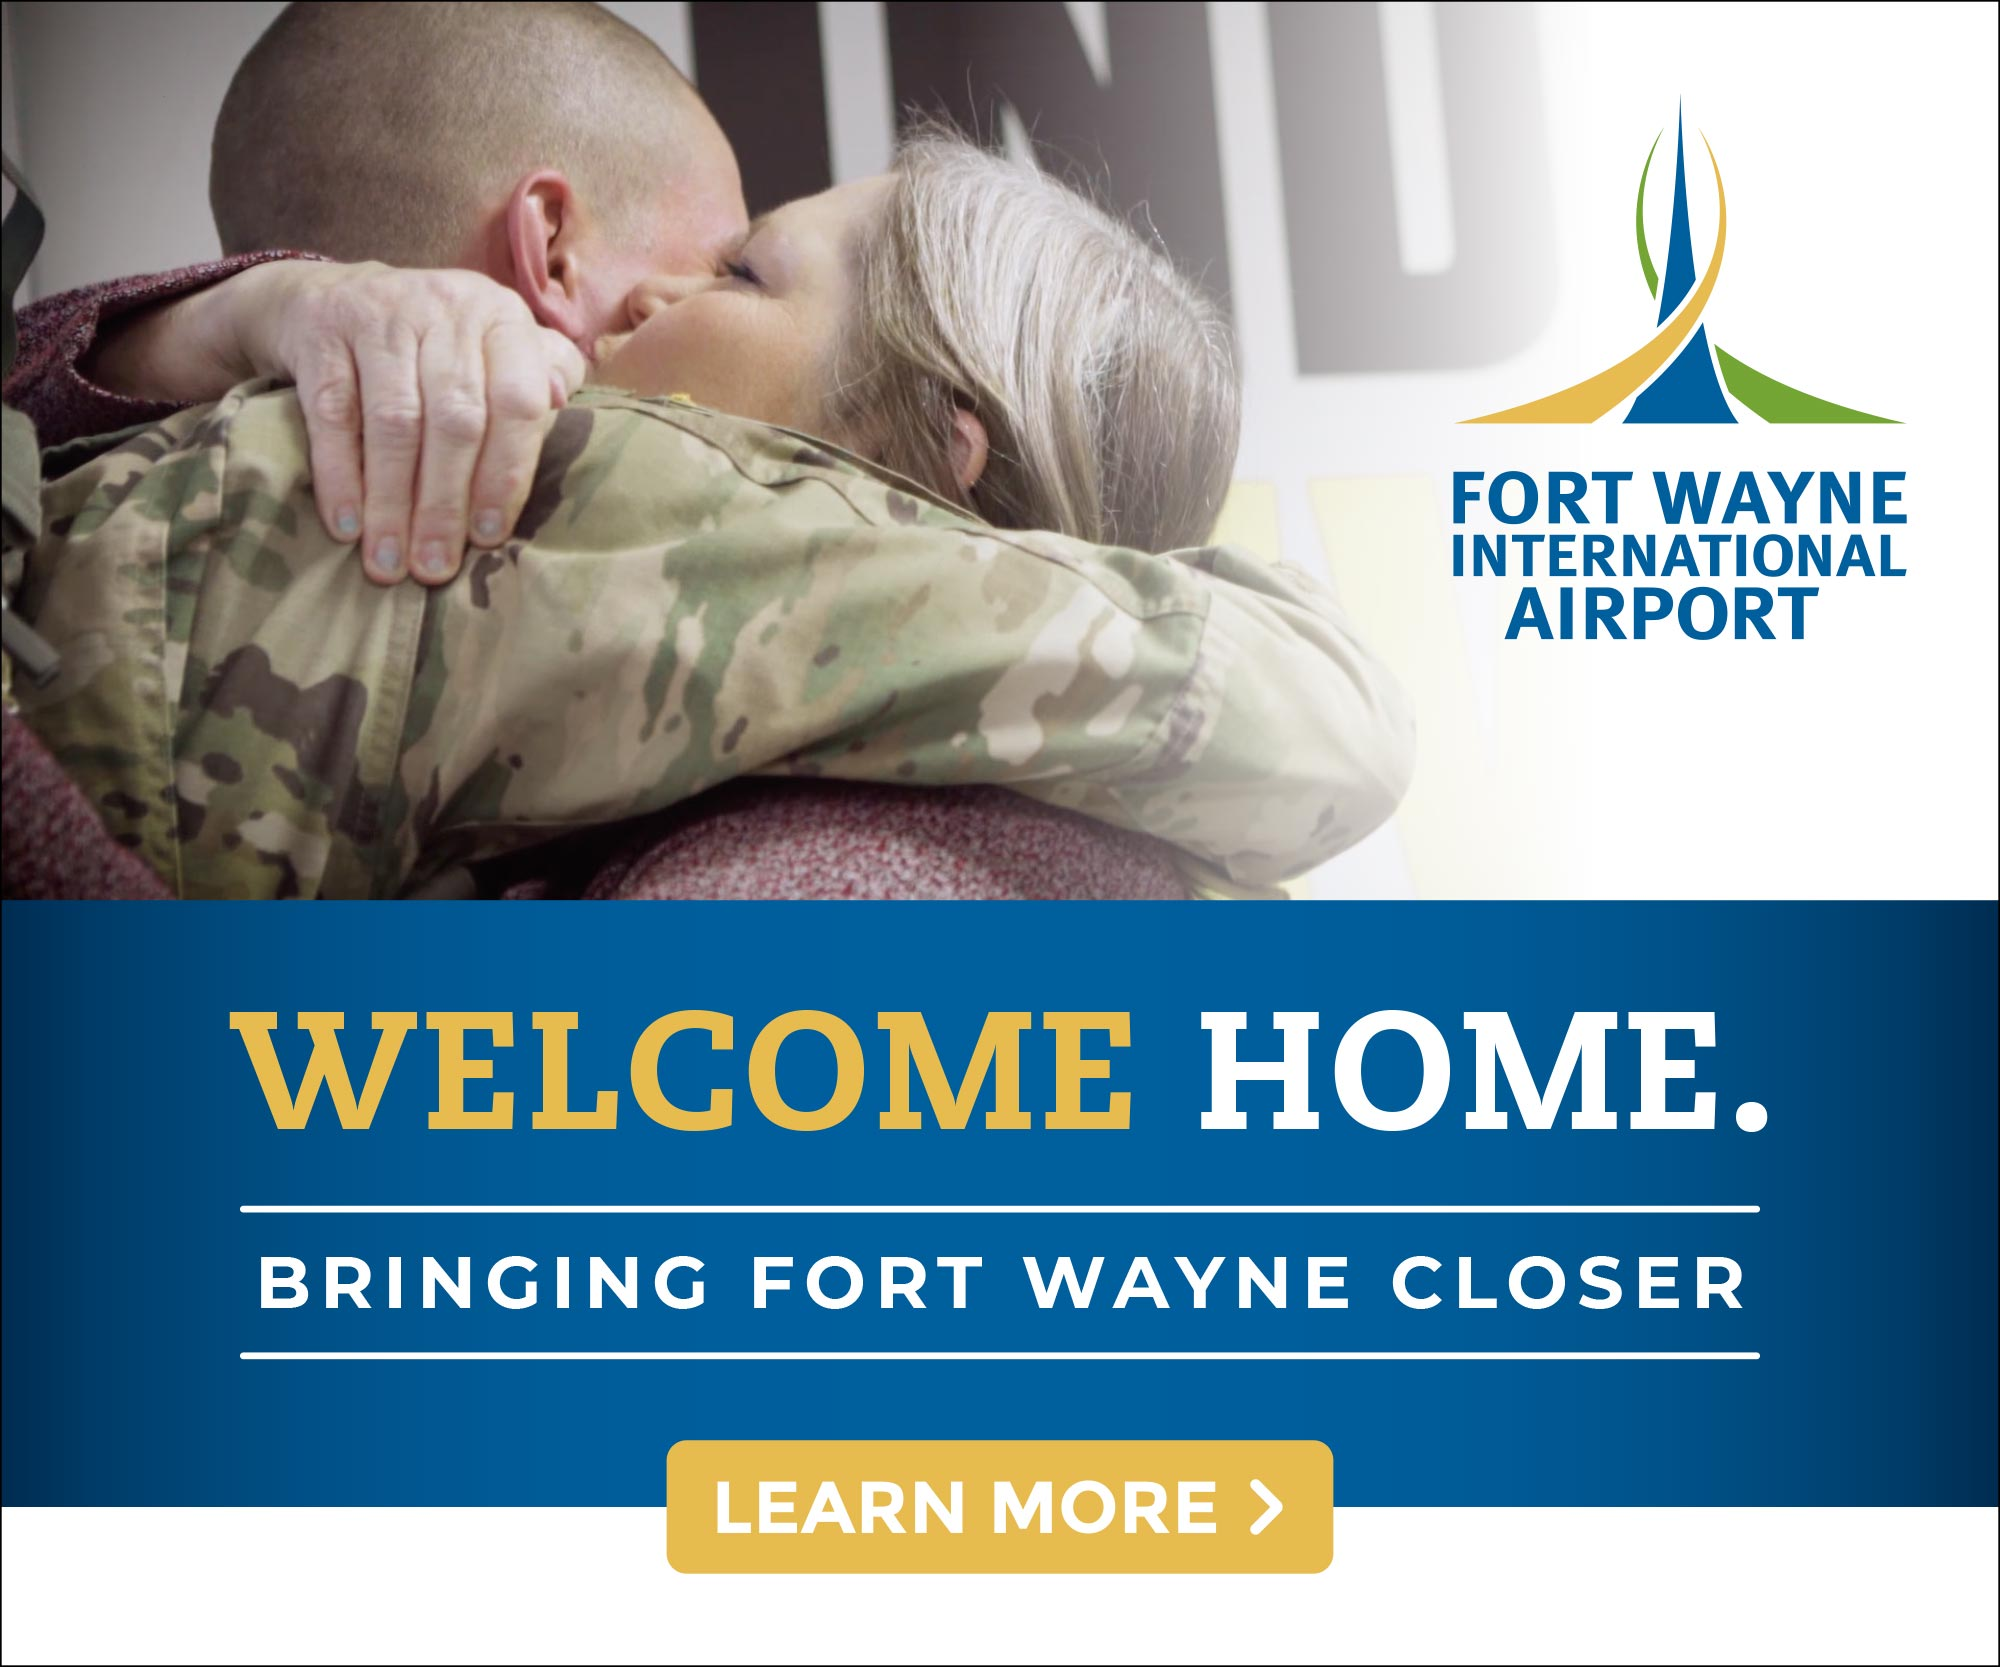 Fort Wayne International Airport, Close to Home Digital Ads